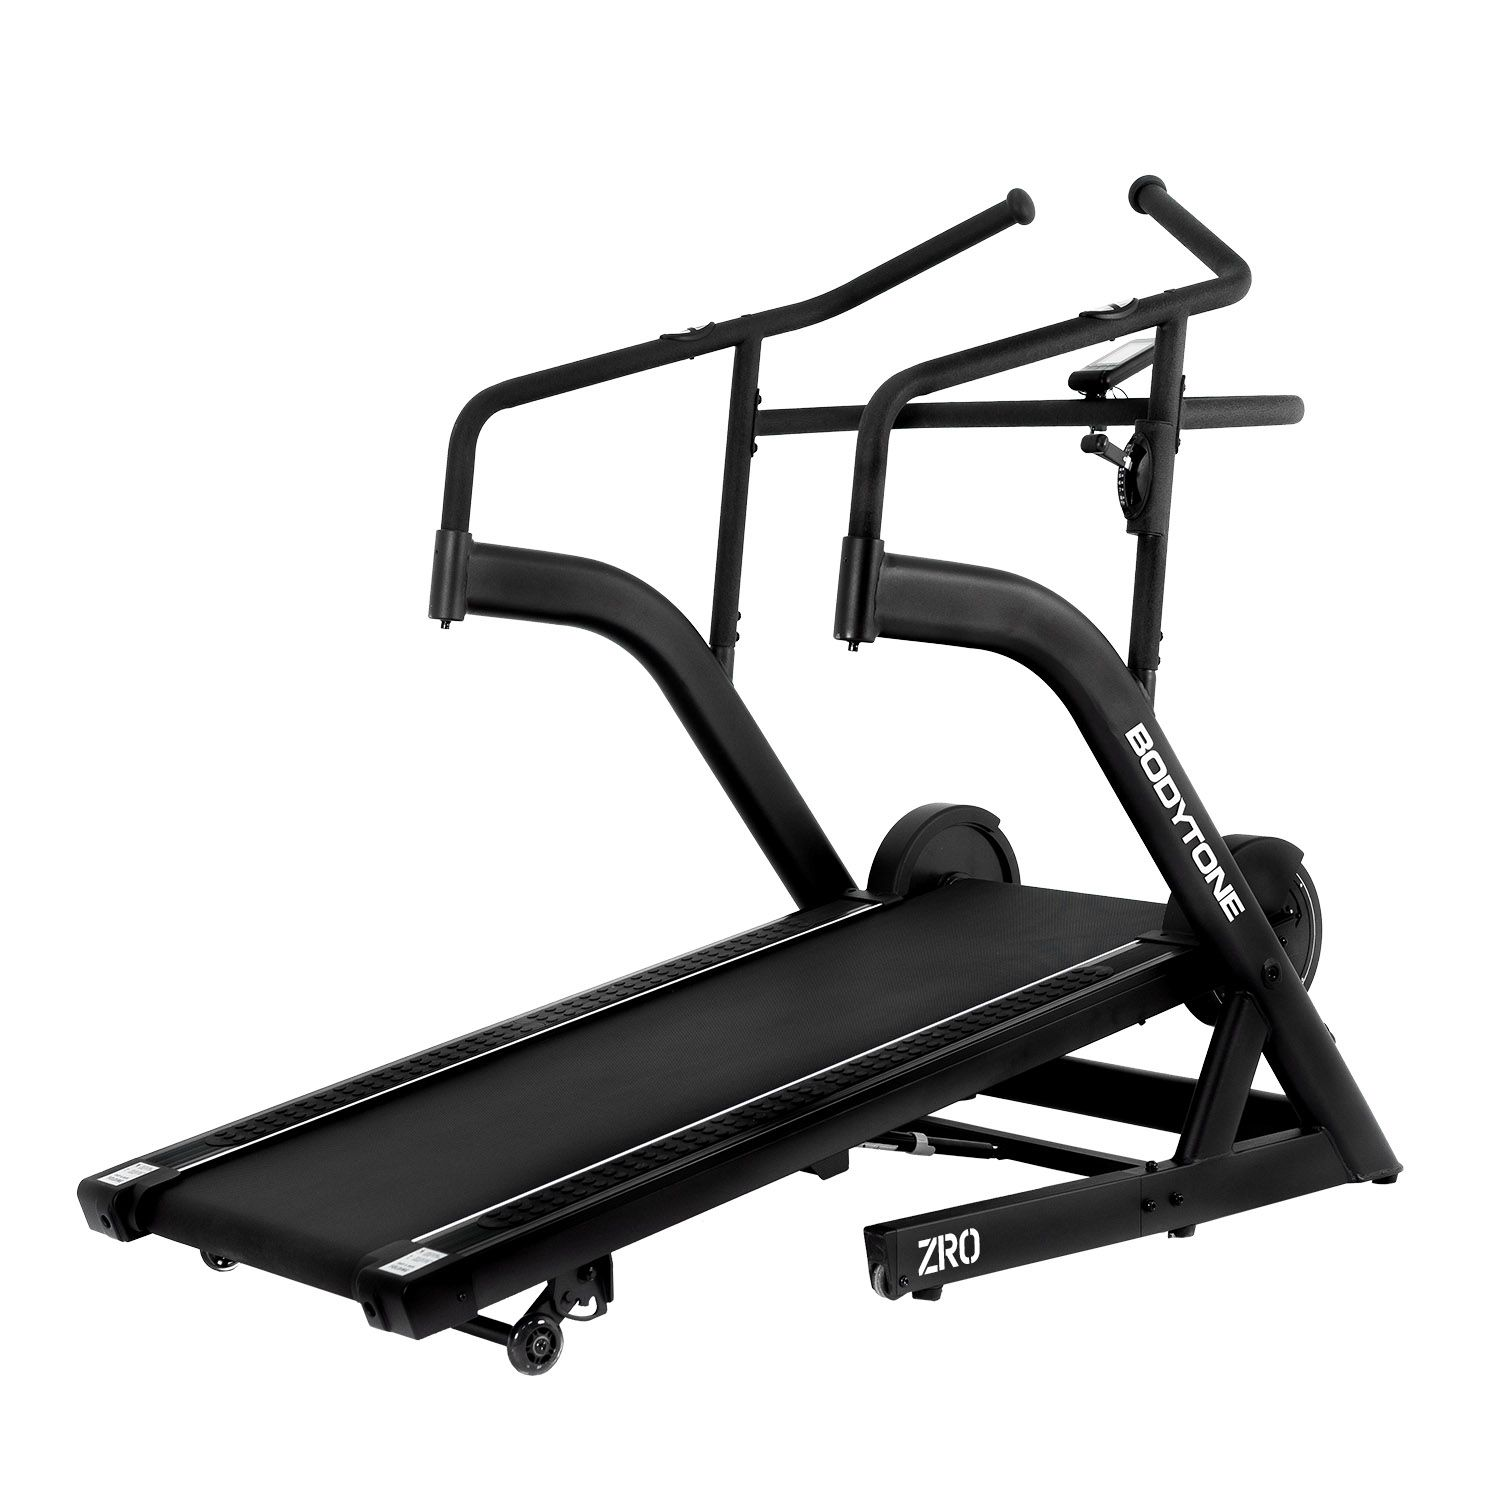 Incline treadmill ZROP